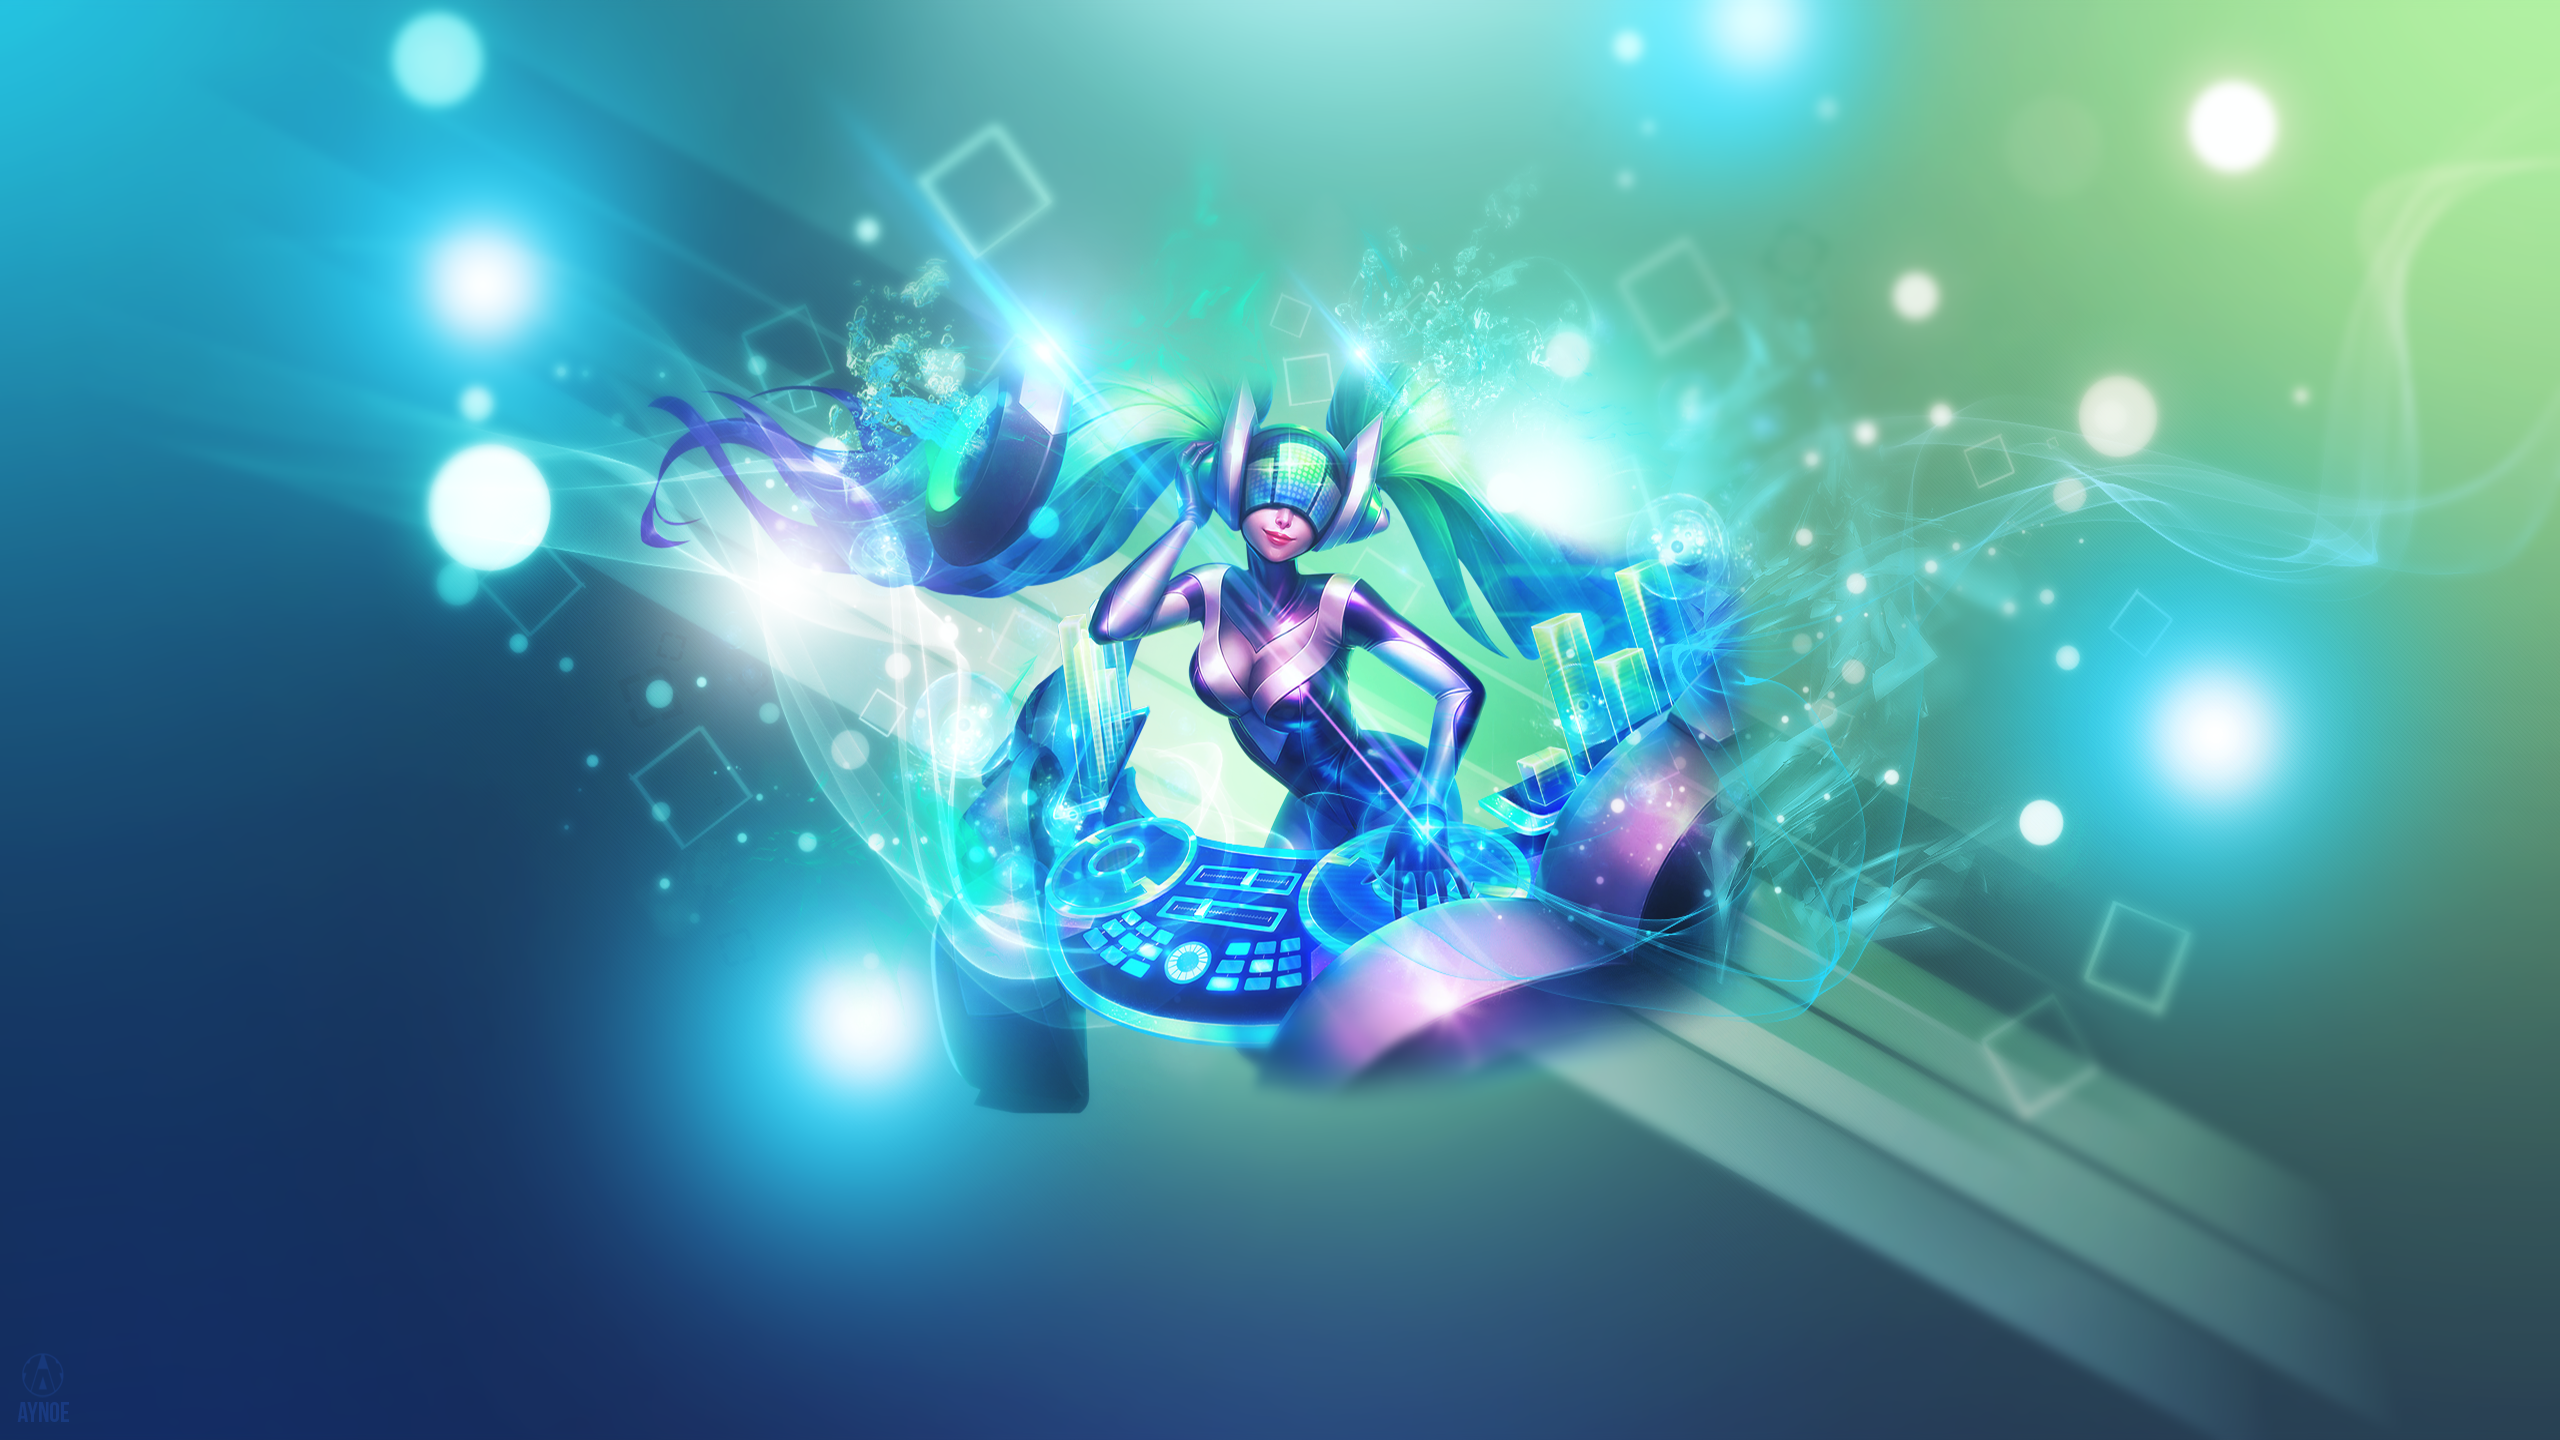 Dj Sona Kinetic League Of Legends